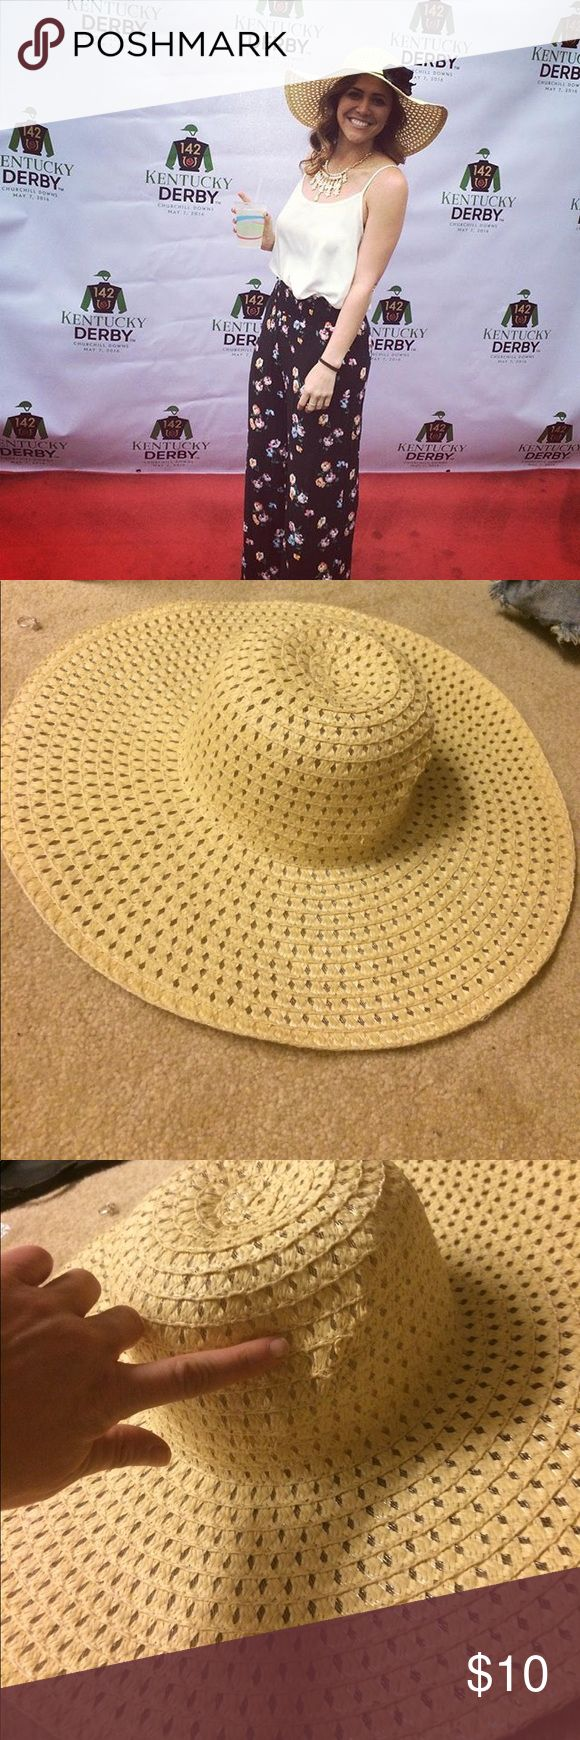 Cute sun hat Purchased at Tj max, I wore it for derby day the last two years. It has a pull on one side magid hats Accessories Hats